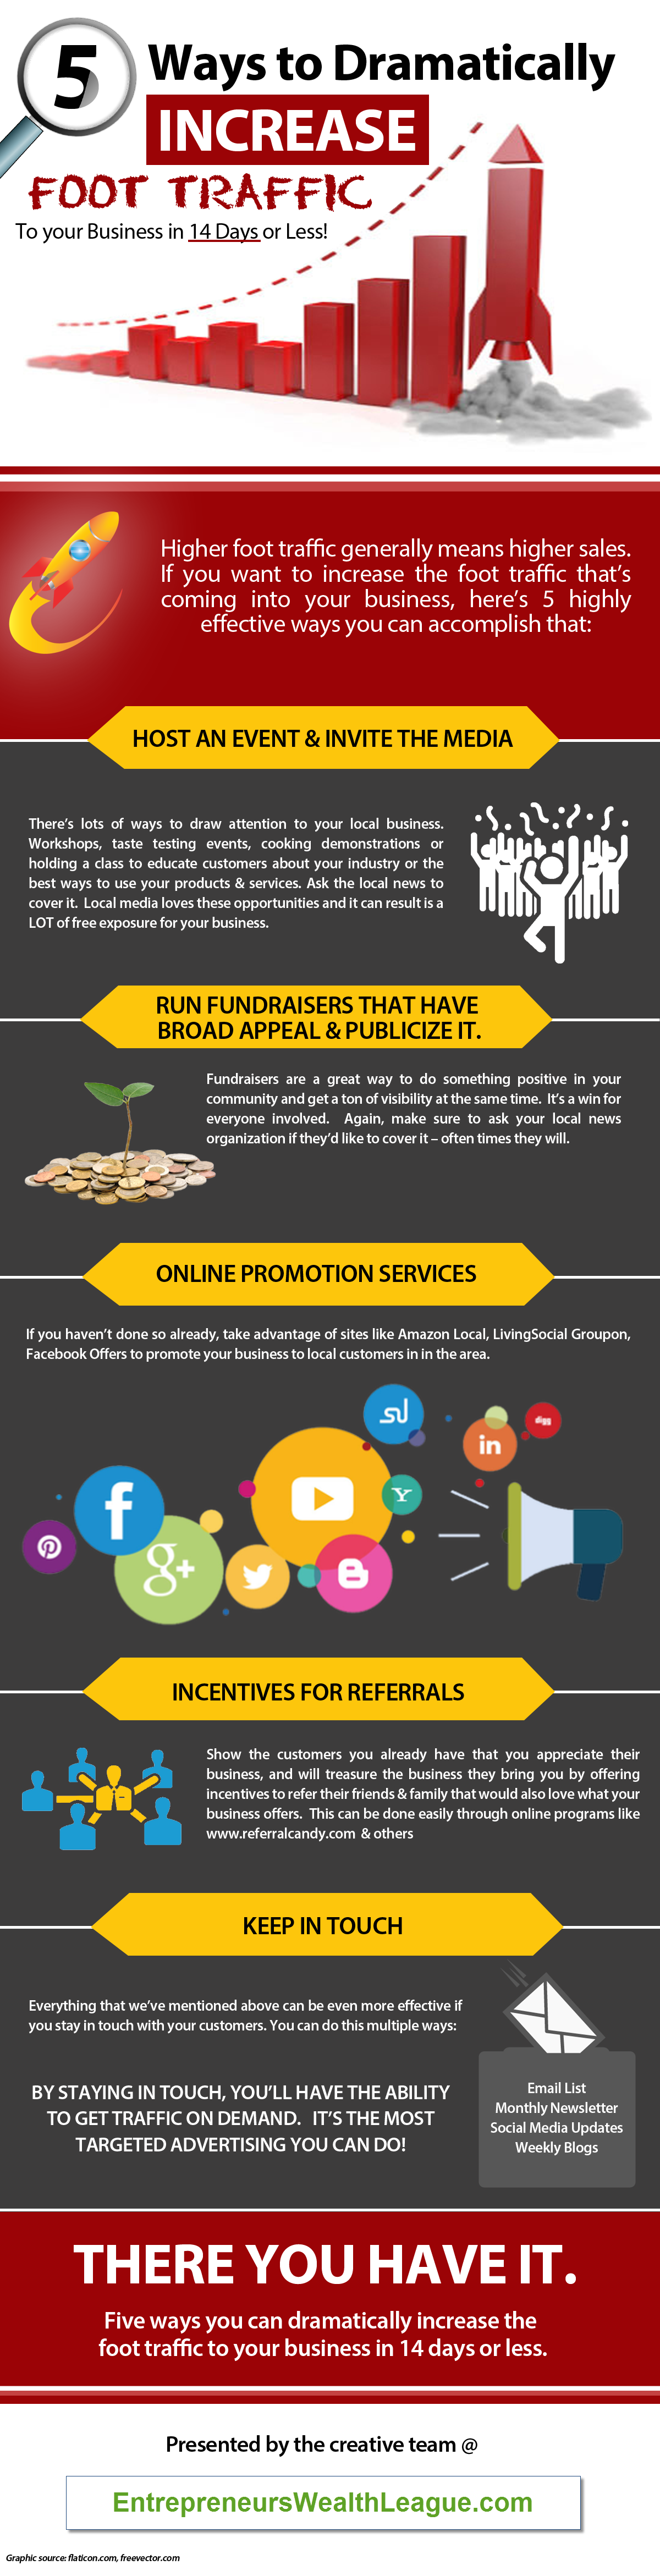 5 Ways To Dramatically Increase Foot Traffic To Your Business – Infographic